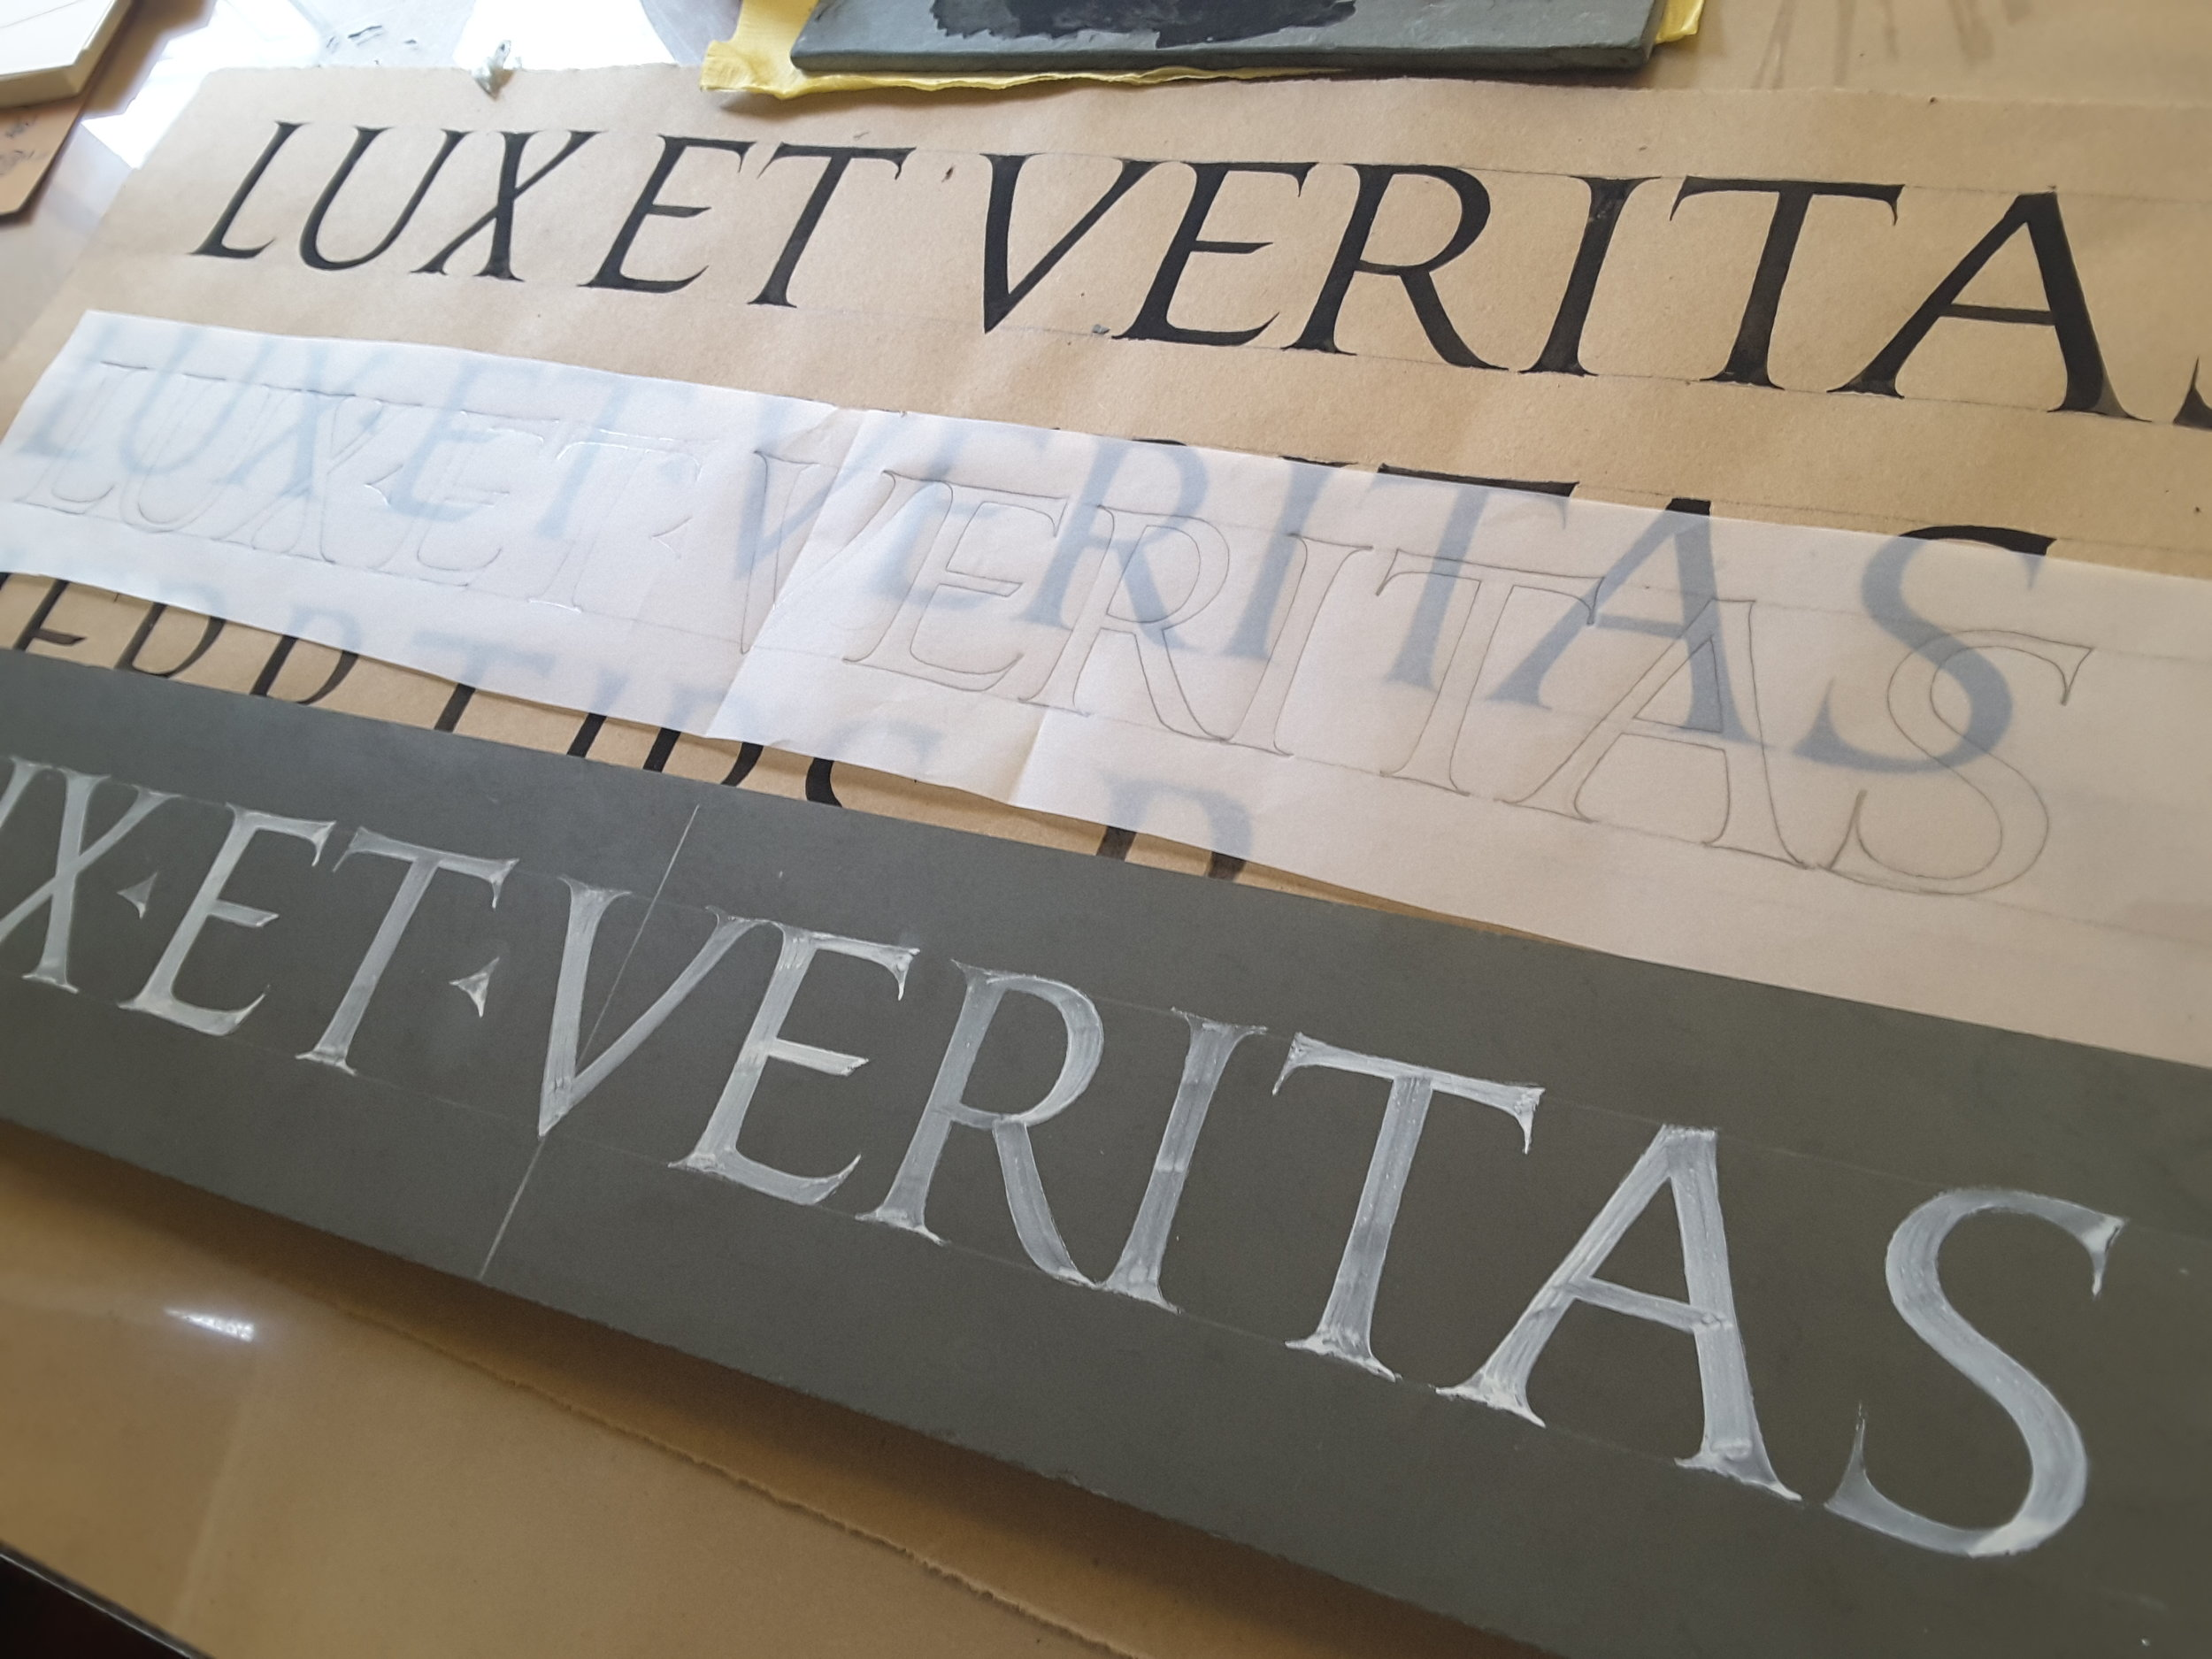 Lux Et Veritas - In 2017 I was honored to be invited to the Robert B. Haas Family Arts Library at Yale University as a Visiting Artisan. I brought along a carving demonstration and for a suitable text I reached no farther than the school's Latin motto. This picture shows the sequence relevant to all of my inscriptions: from brushwork on paper to a traced master layout to letters painted on the stone awaiting the mallet and chisel.